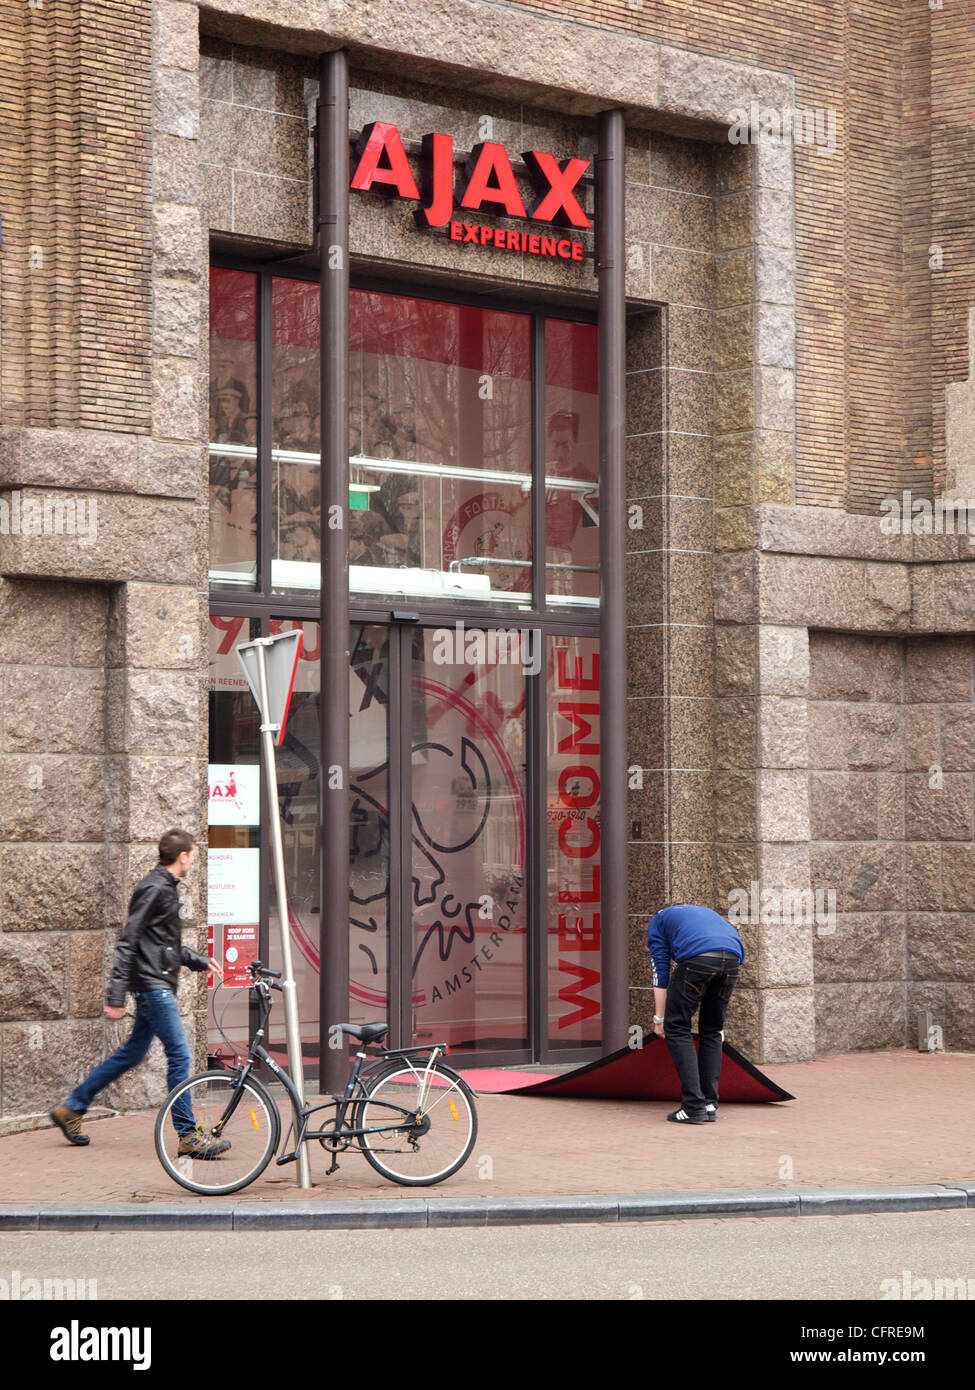 Ajax Experience entrance, Amsterdam the Netherlands - Stock Image